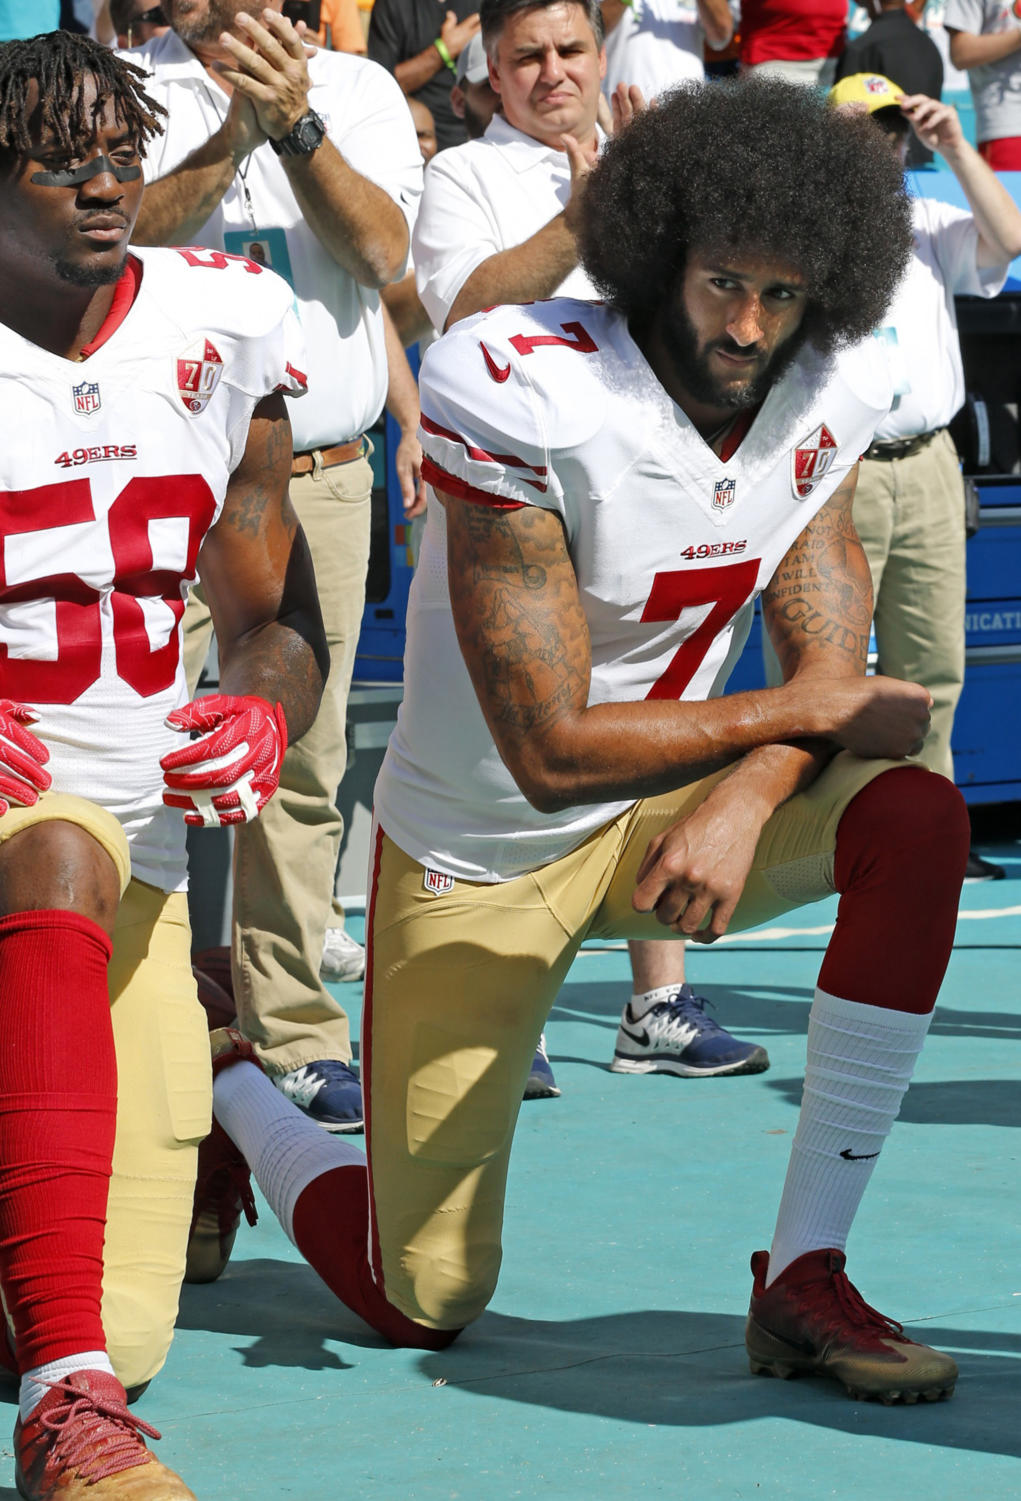 Kaepernick brought on nationwide debate when he took a knee during the National Anthem to protest the unlawful killing of black men and women by police officers.